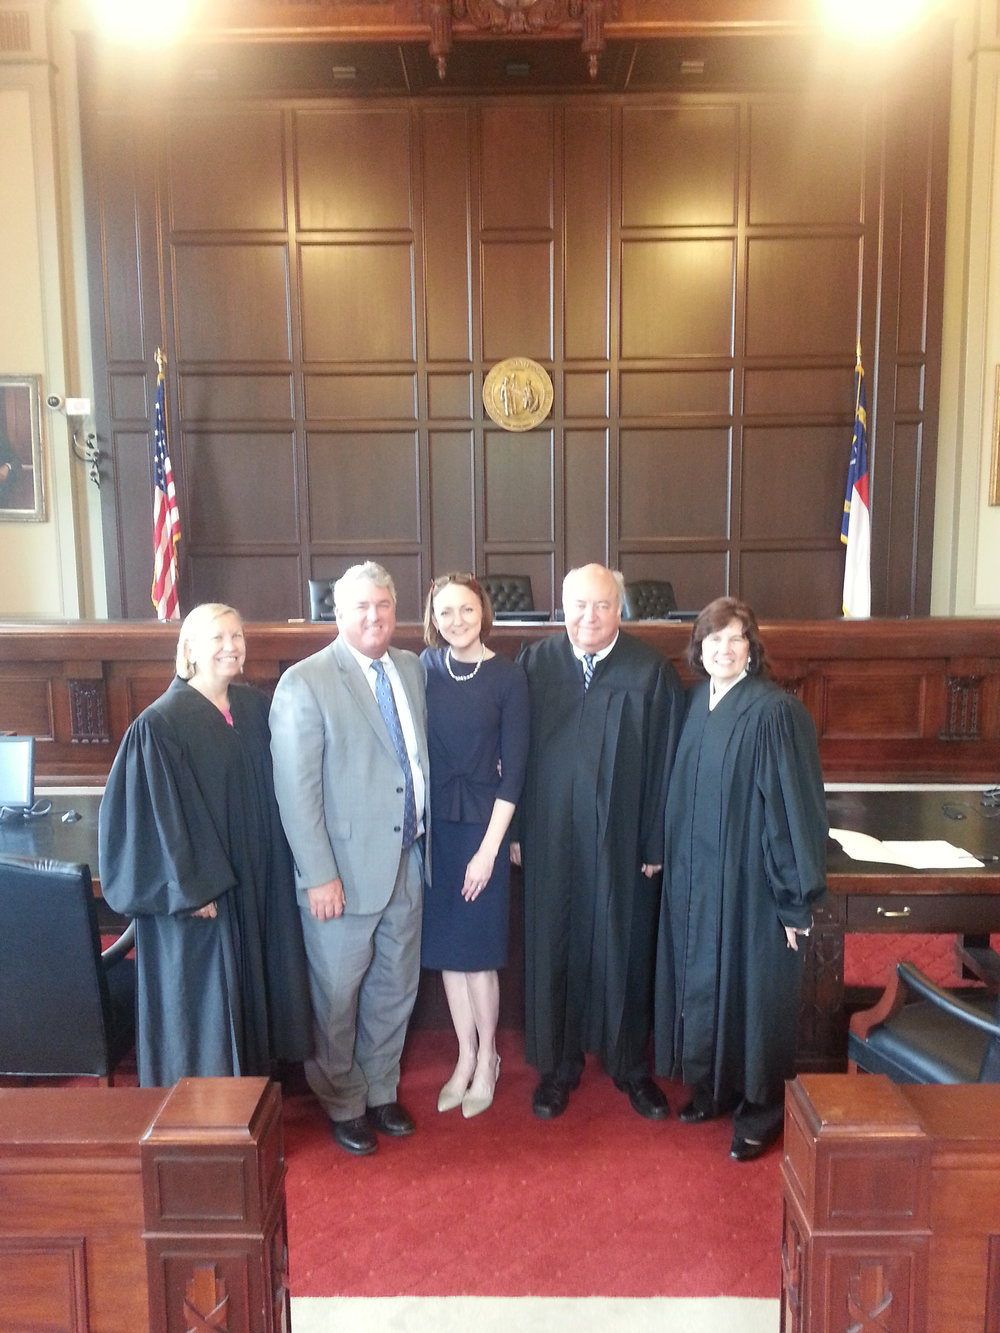 Judge Hunter Swearing in judge Wendy Enochs at the NC Court of Appeals.